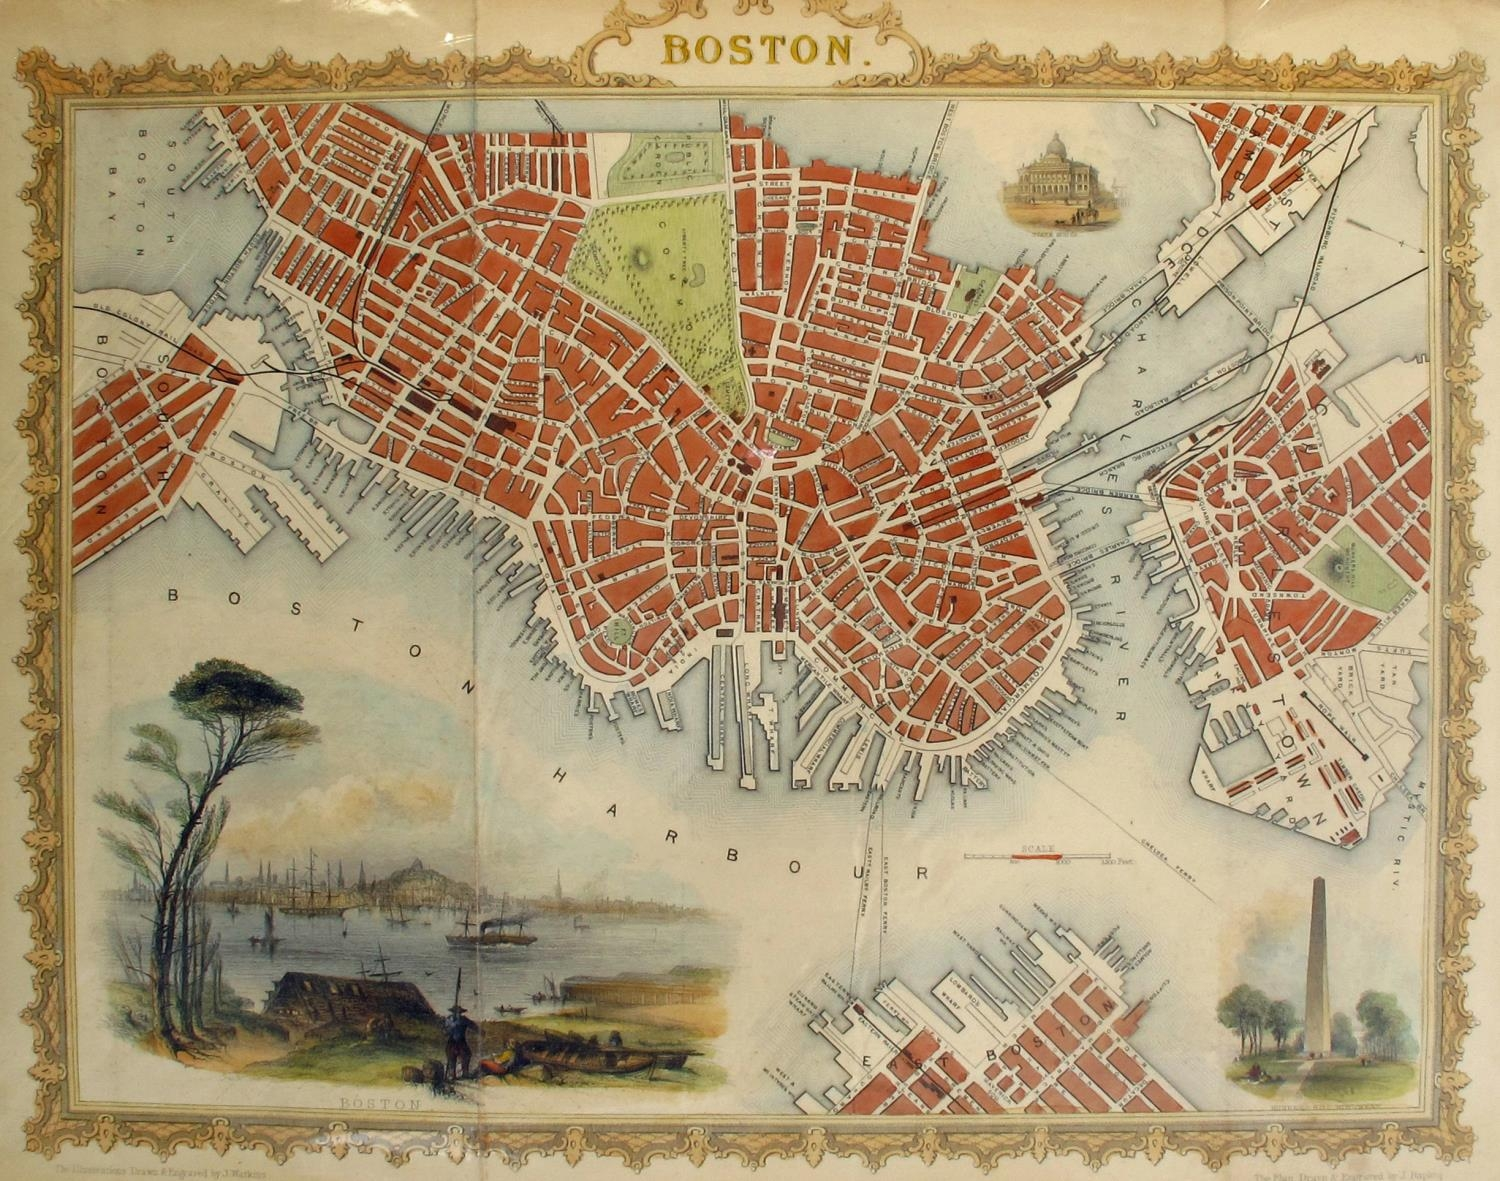 1850 & 1860 Plans of Boston New York, A hand-coloured engraved city plan of Boston, with three